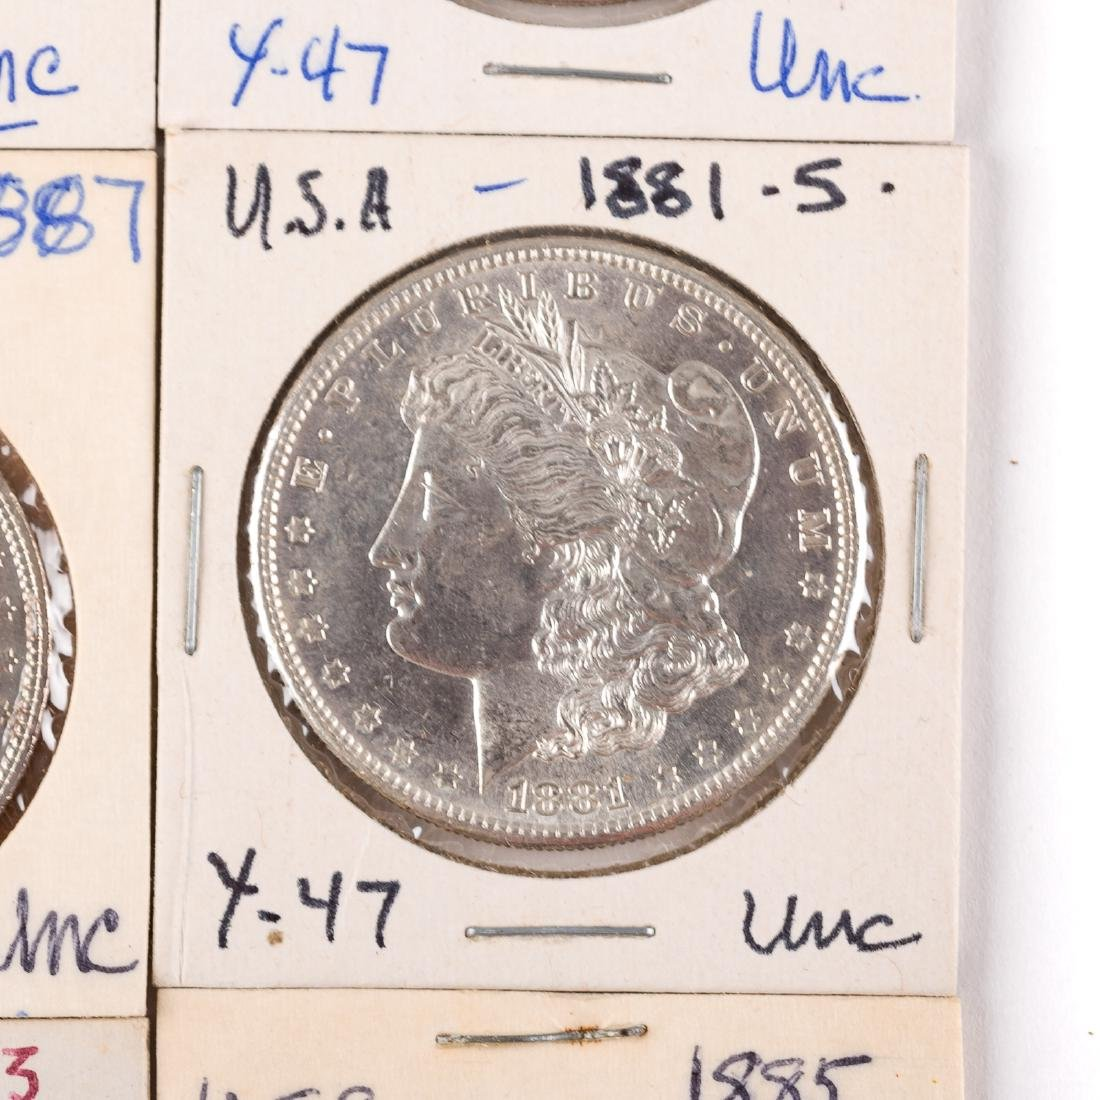 [US] Nine Uncirculated/Better Silver Dollars - 3